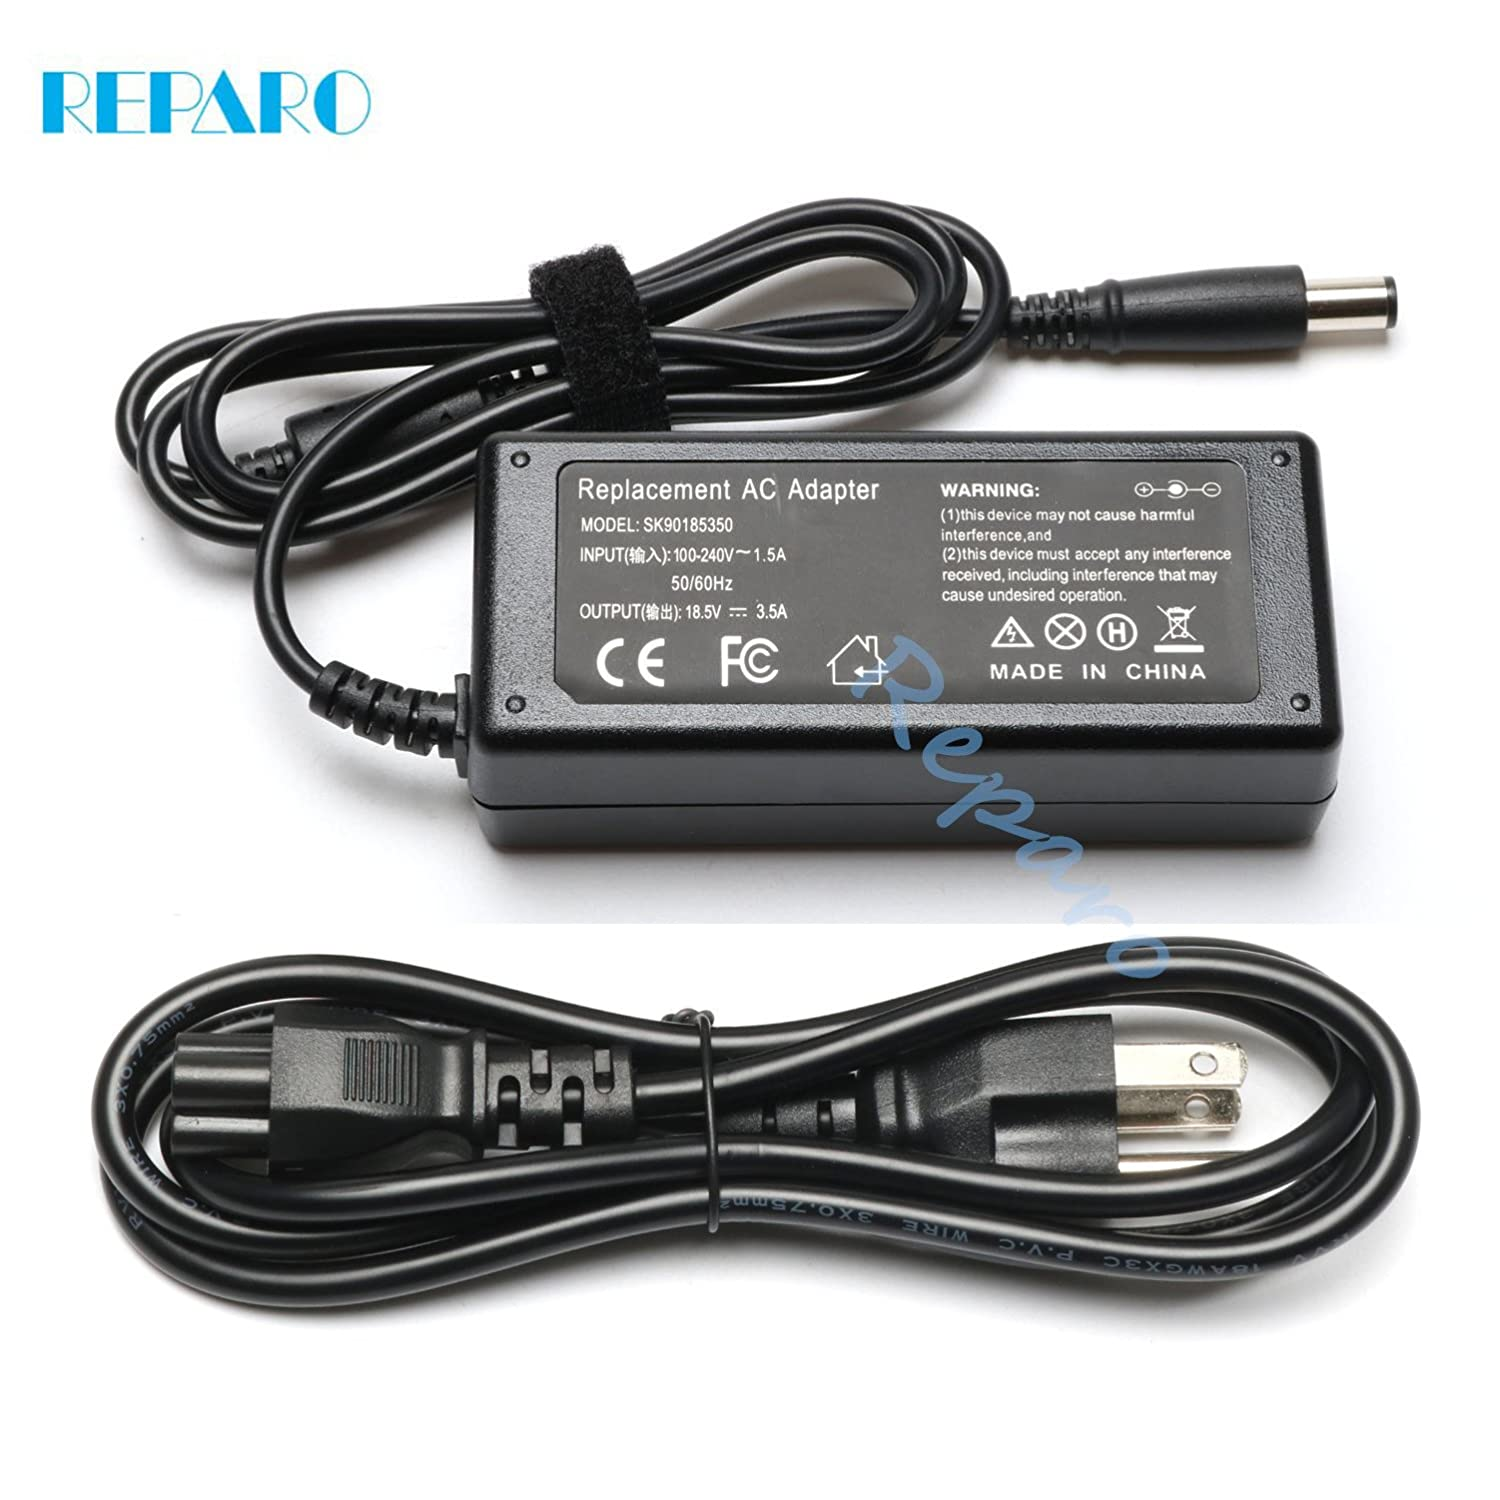 Amazon.com: Reparo 65 W AC Adapter Laptop Charger Power ...